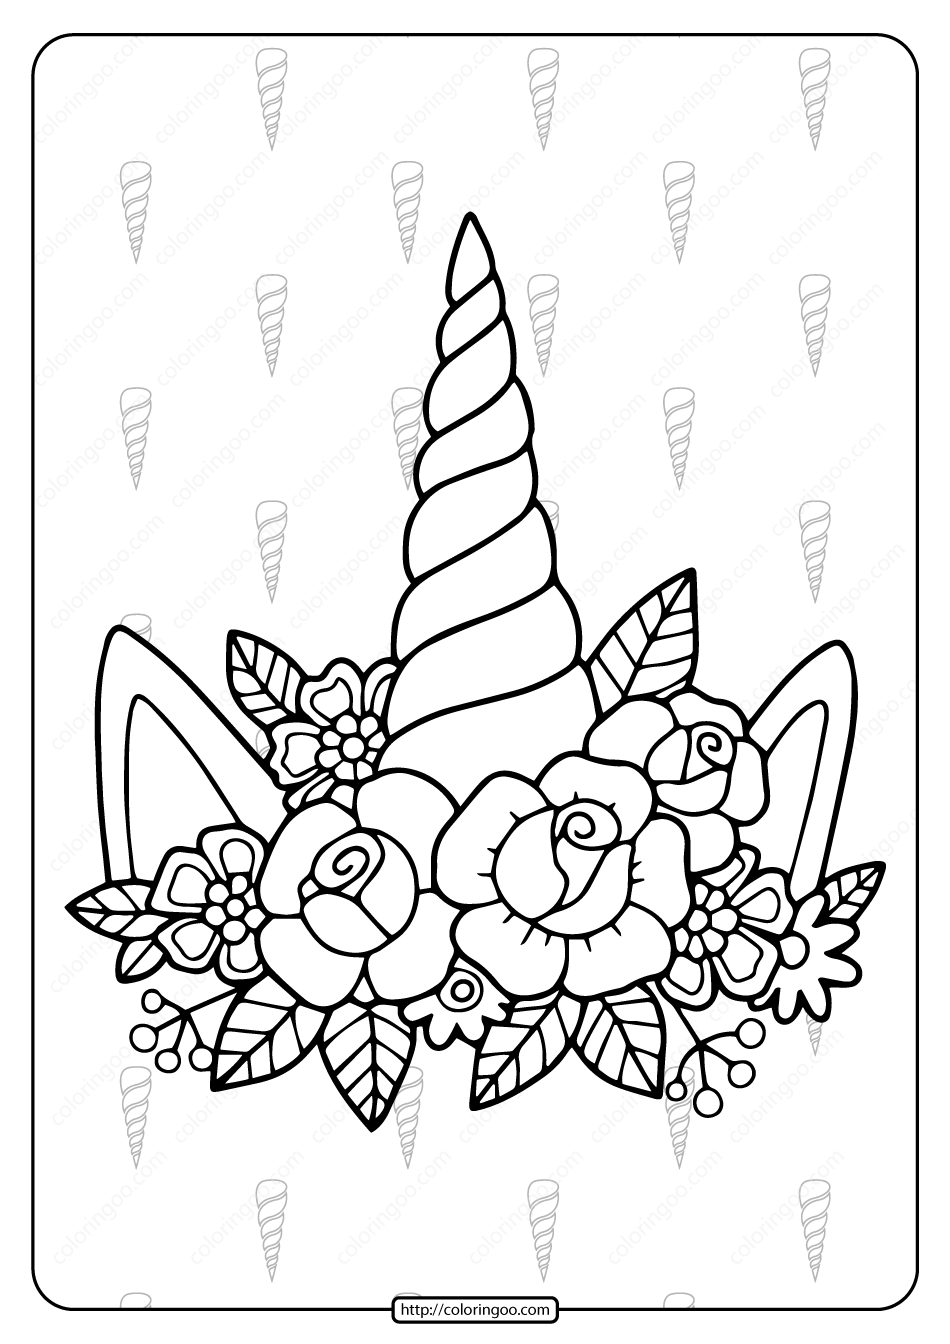 Printable Unicorn Horn And Flowers Coloring Page Unicorn Coloring Pages Unicorn Printables Coloring Pages